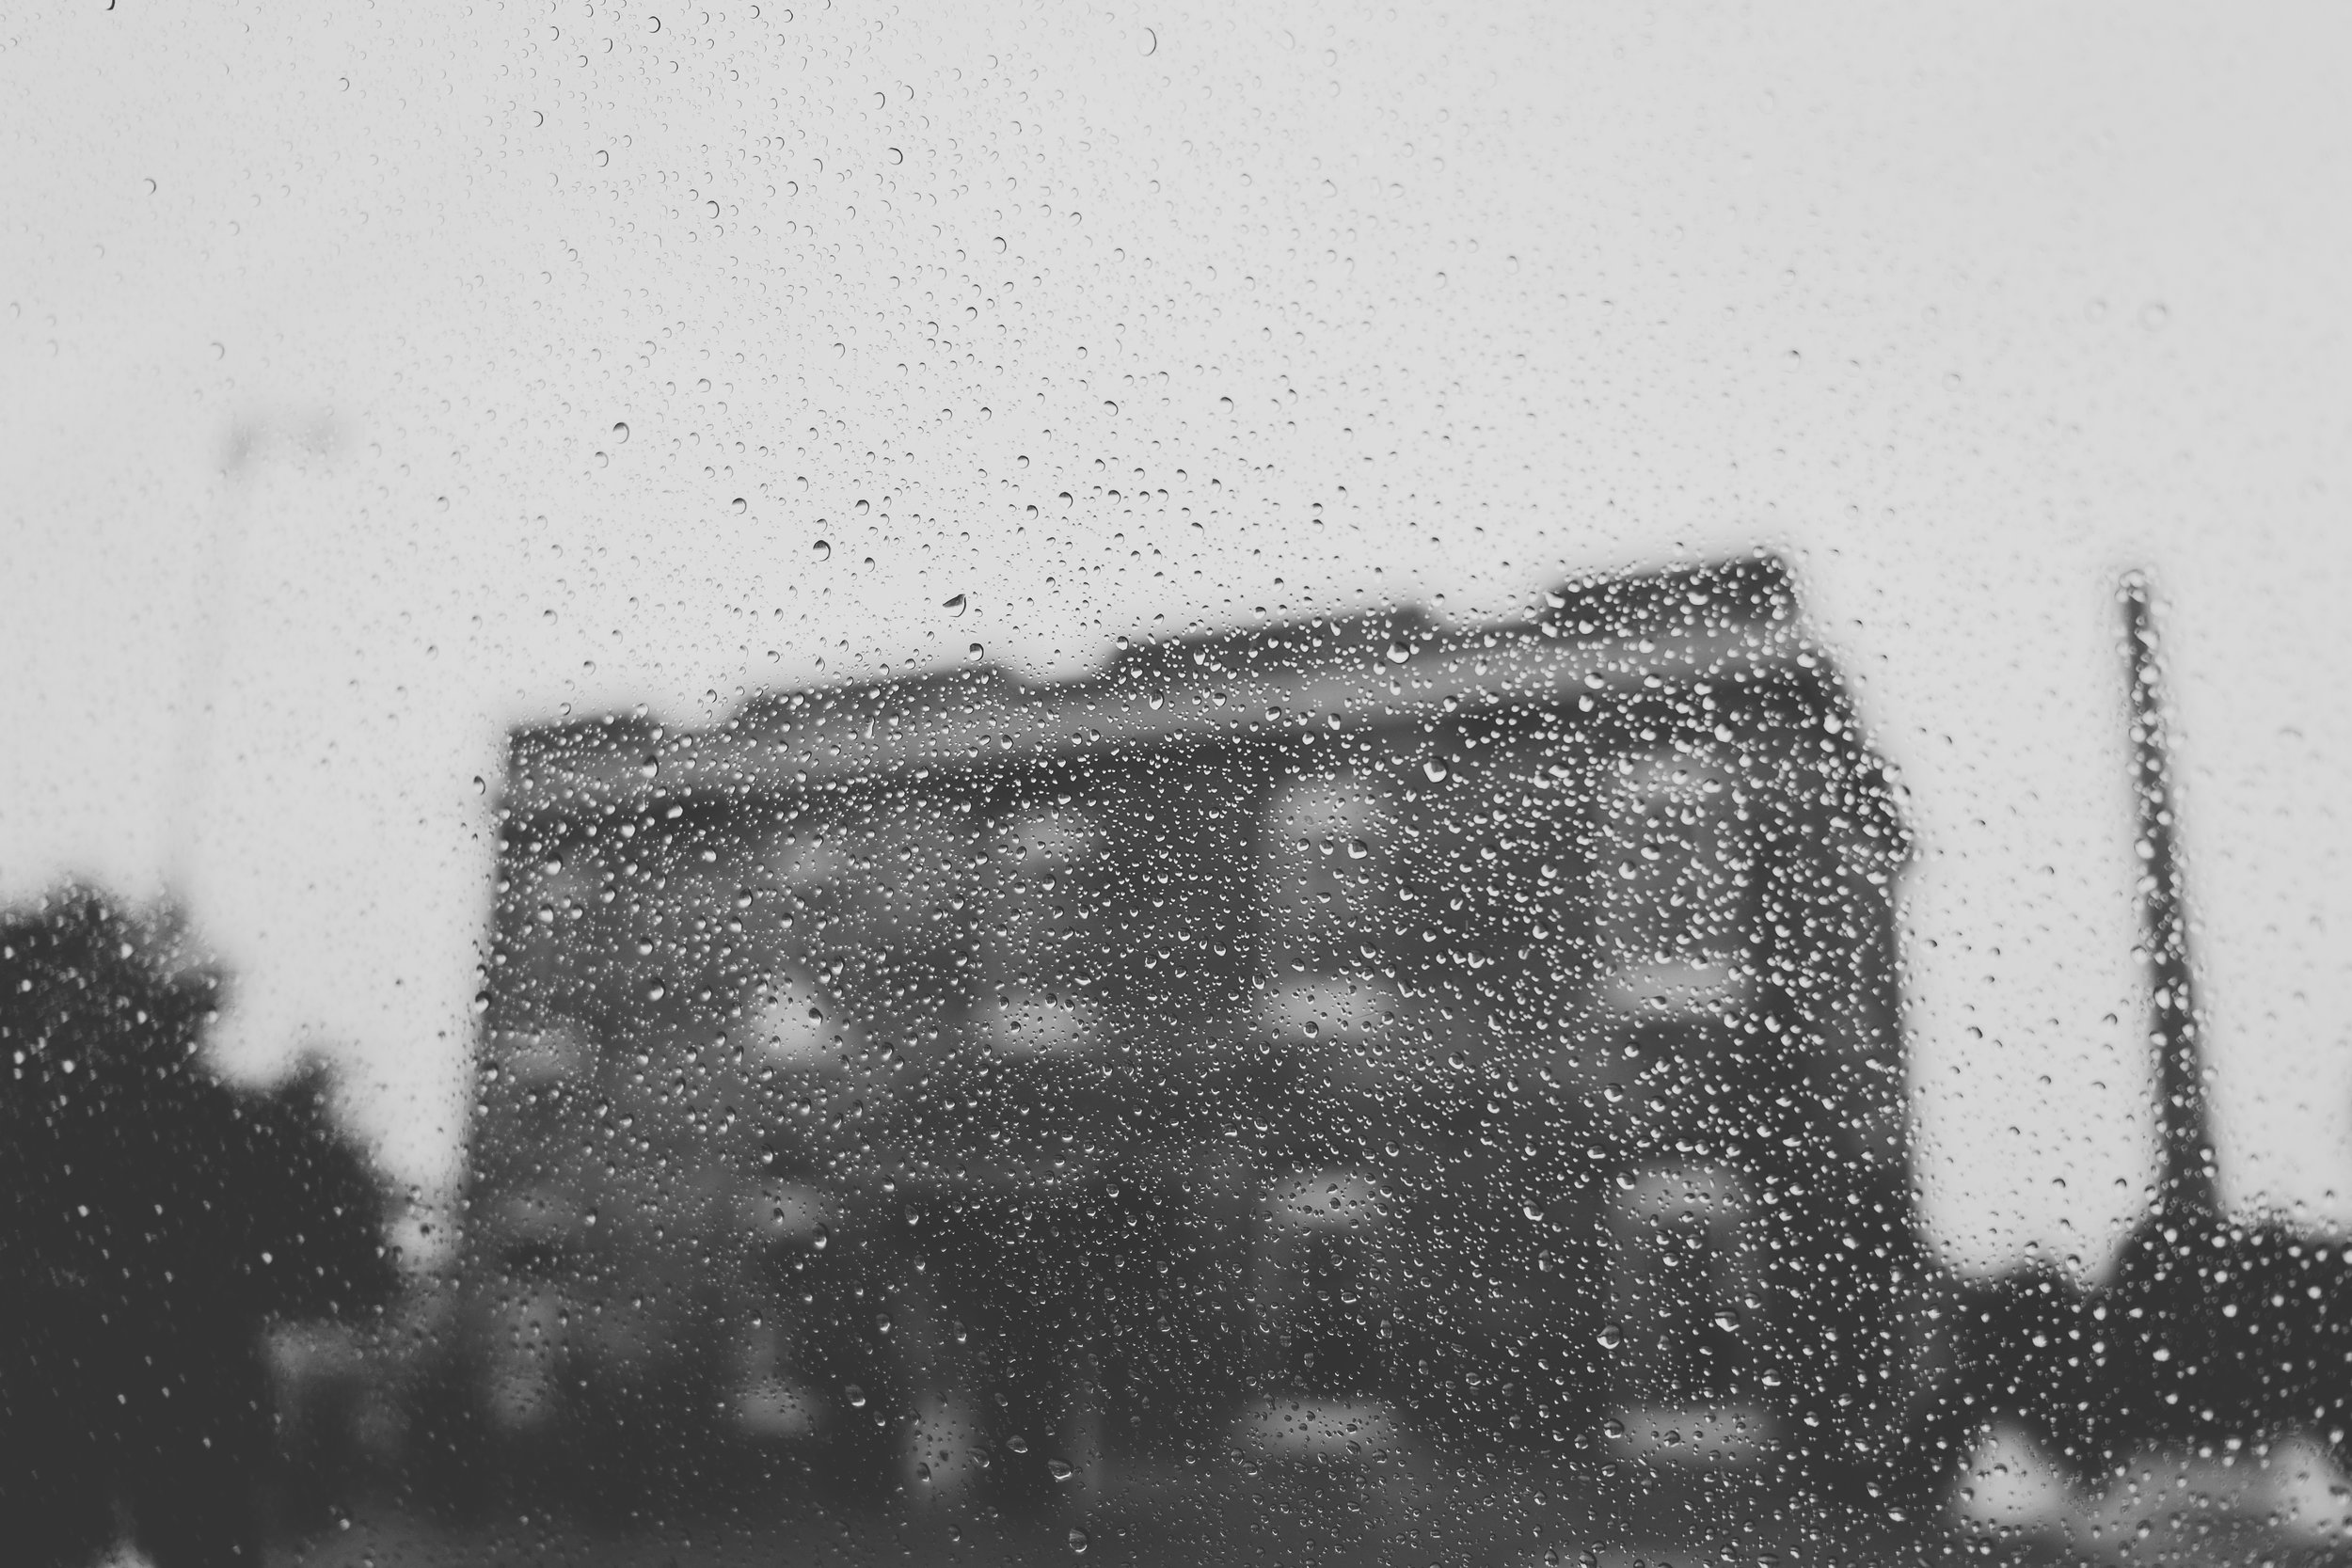 Photograph of rain drops on a window with The Filter Building in background.